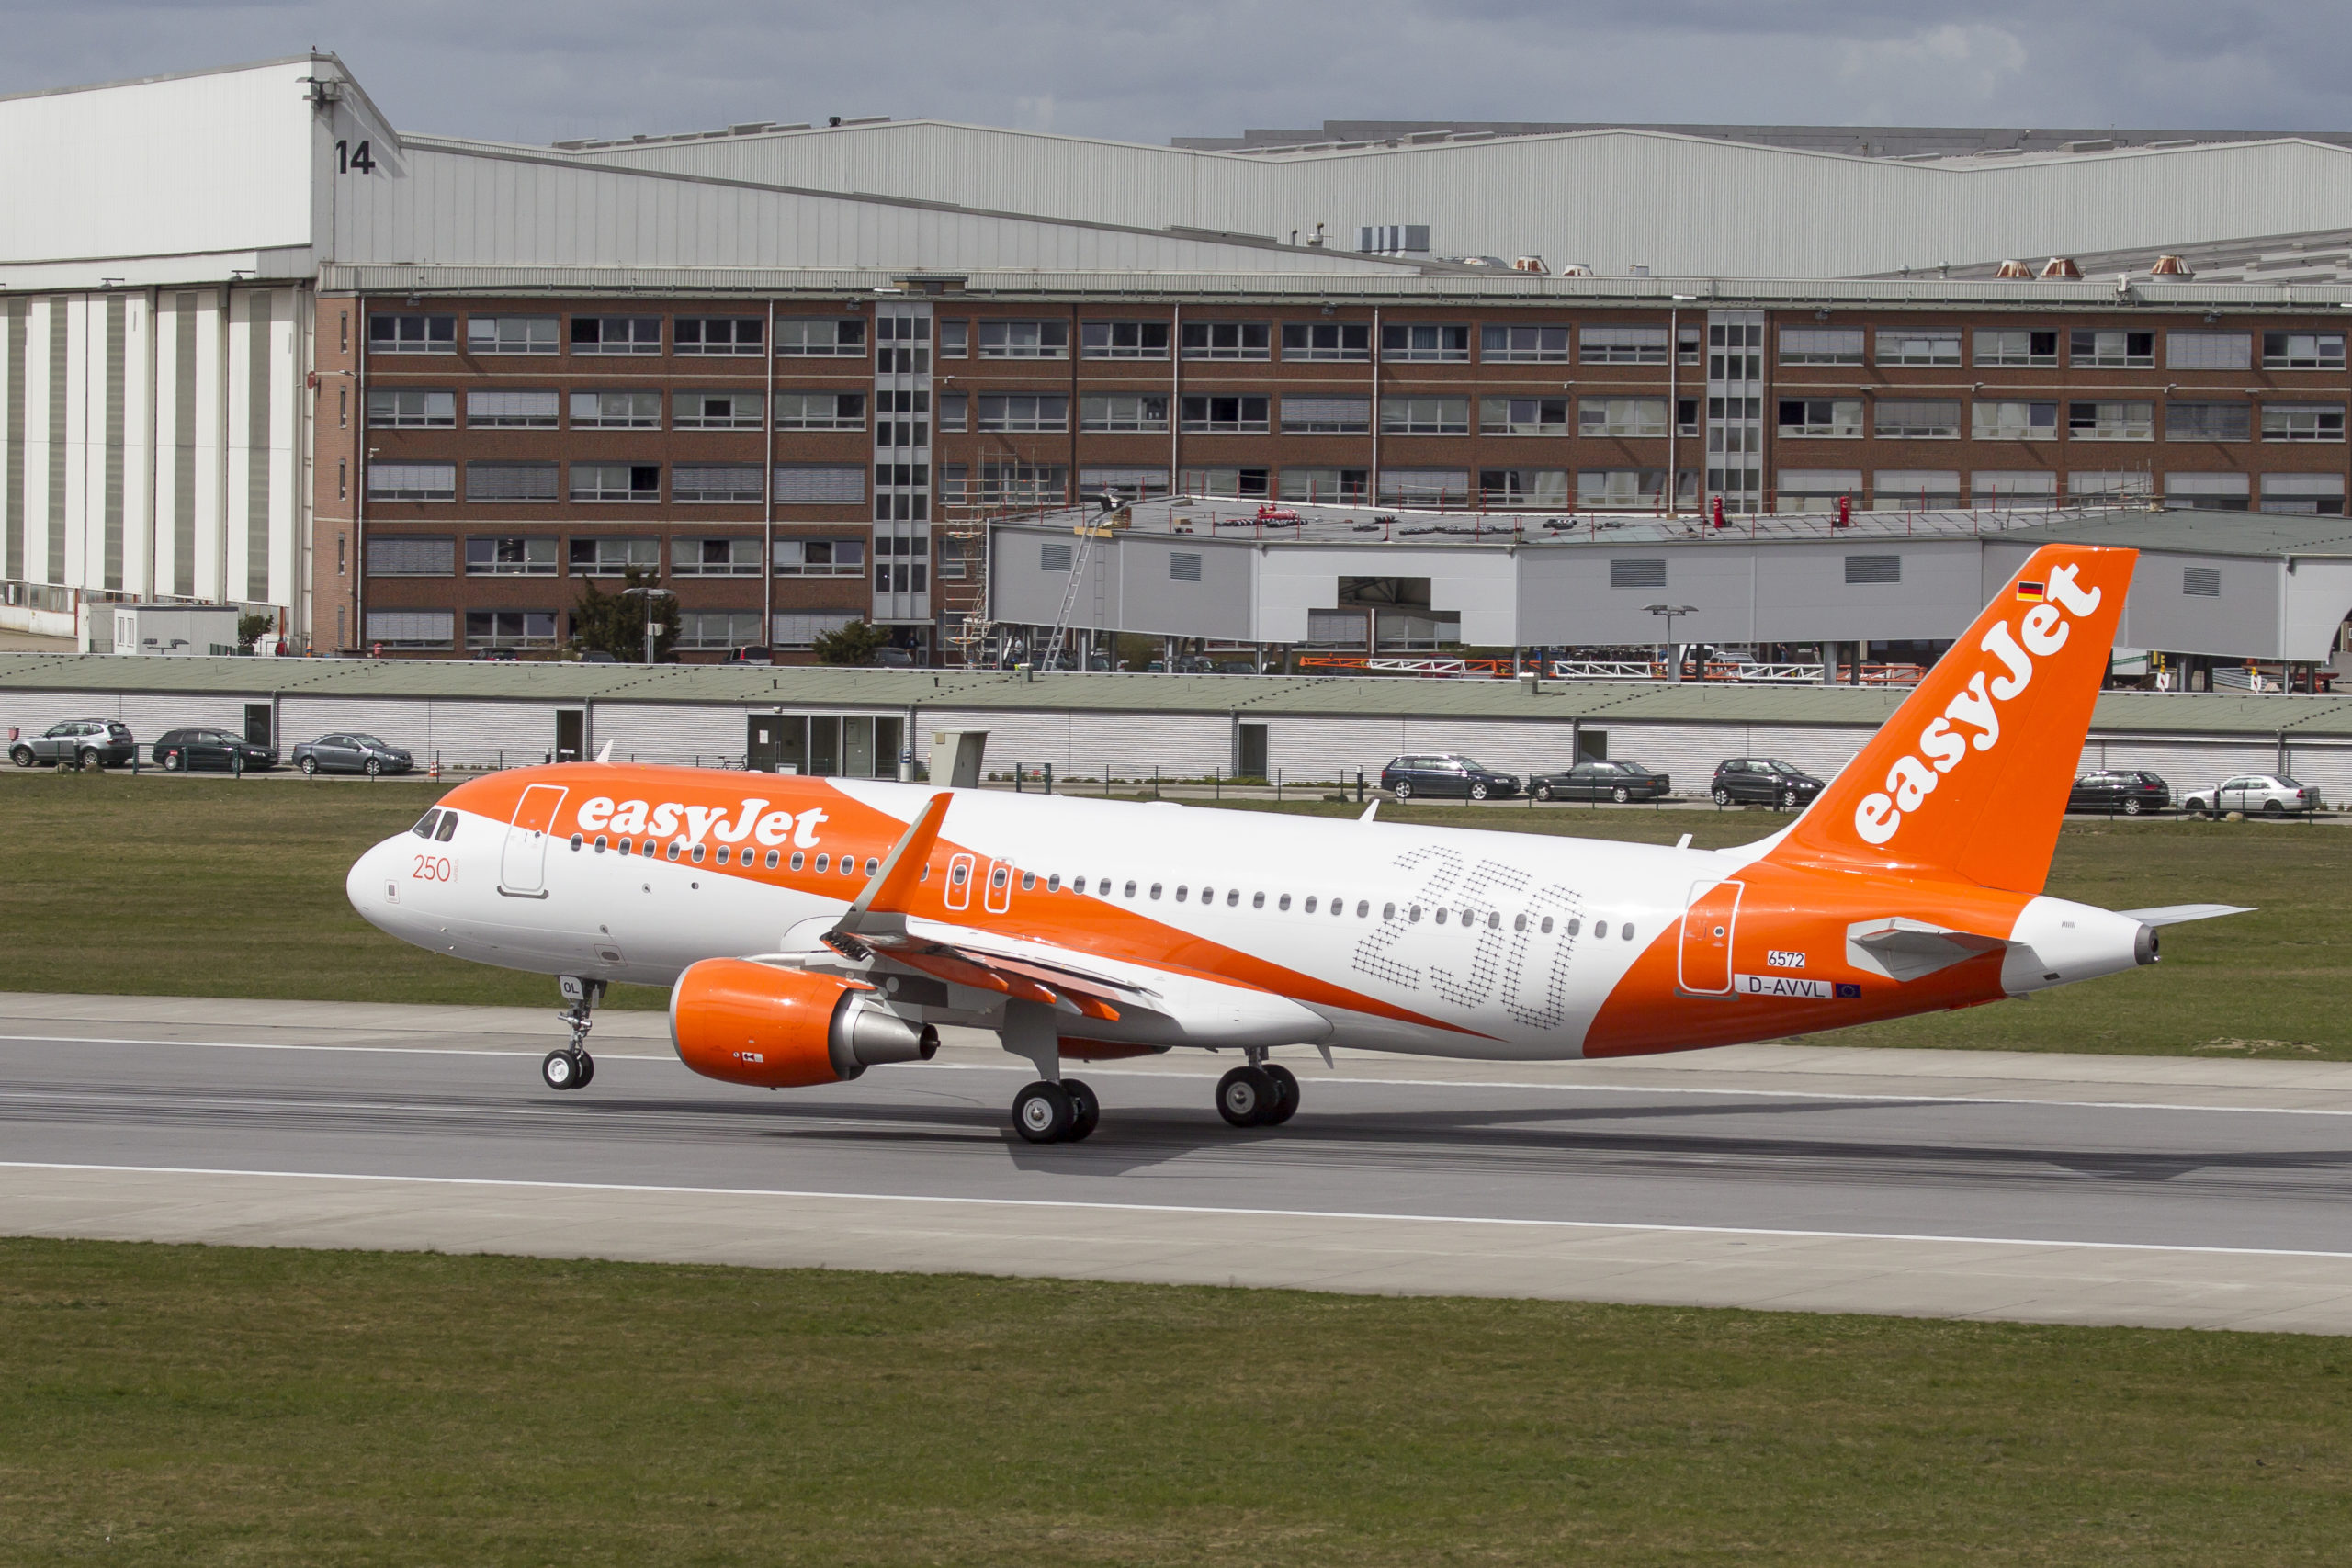 EasyJet on the runway